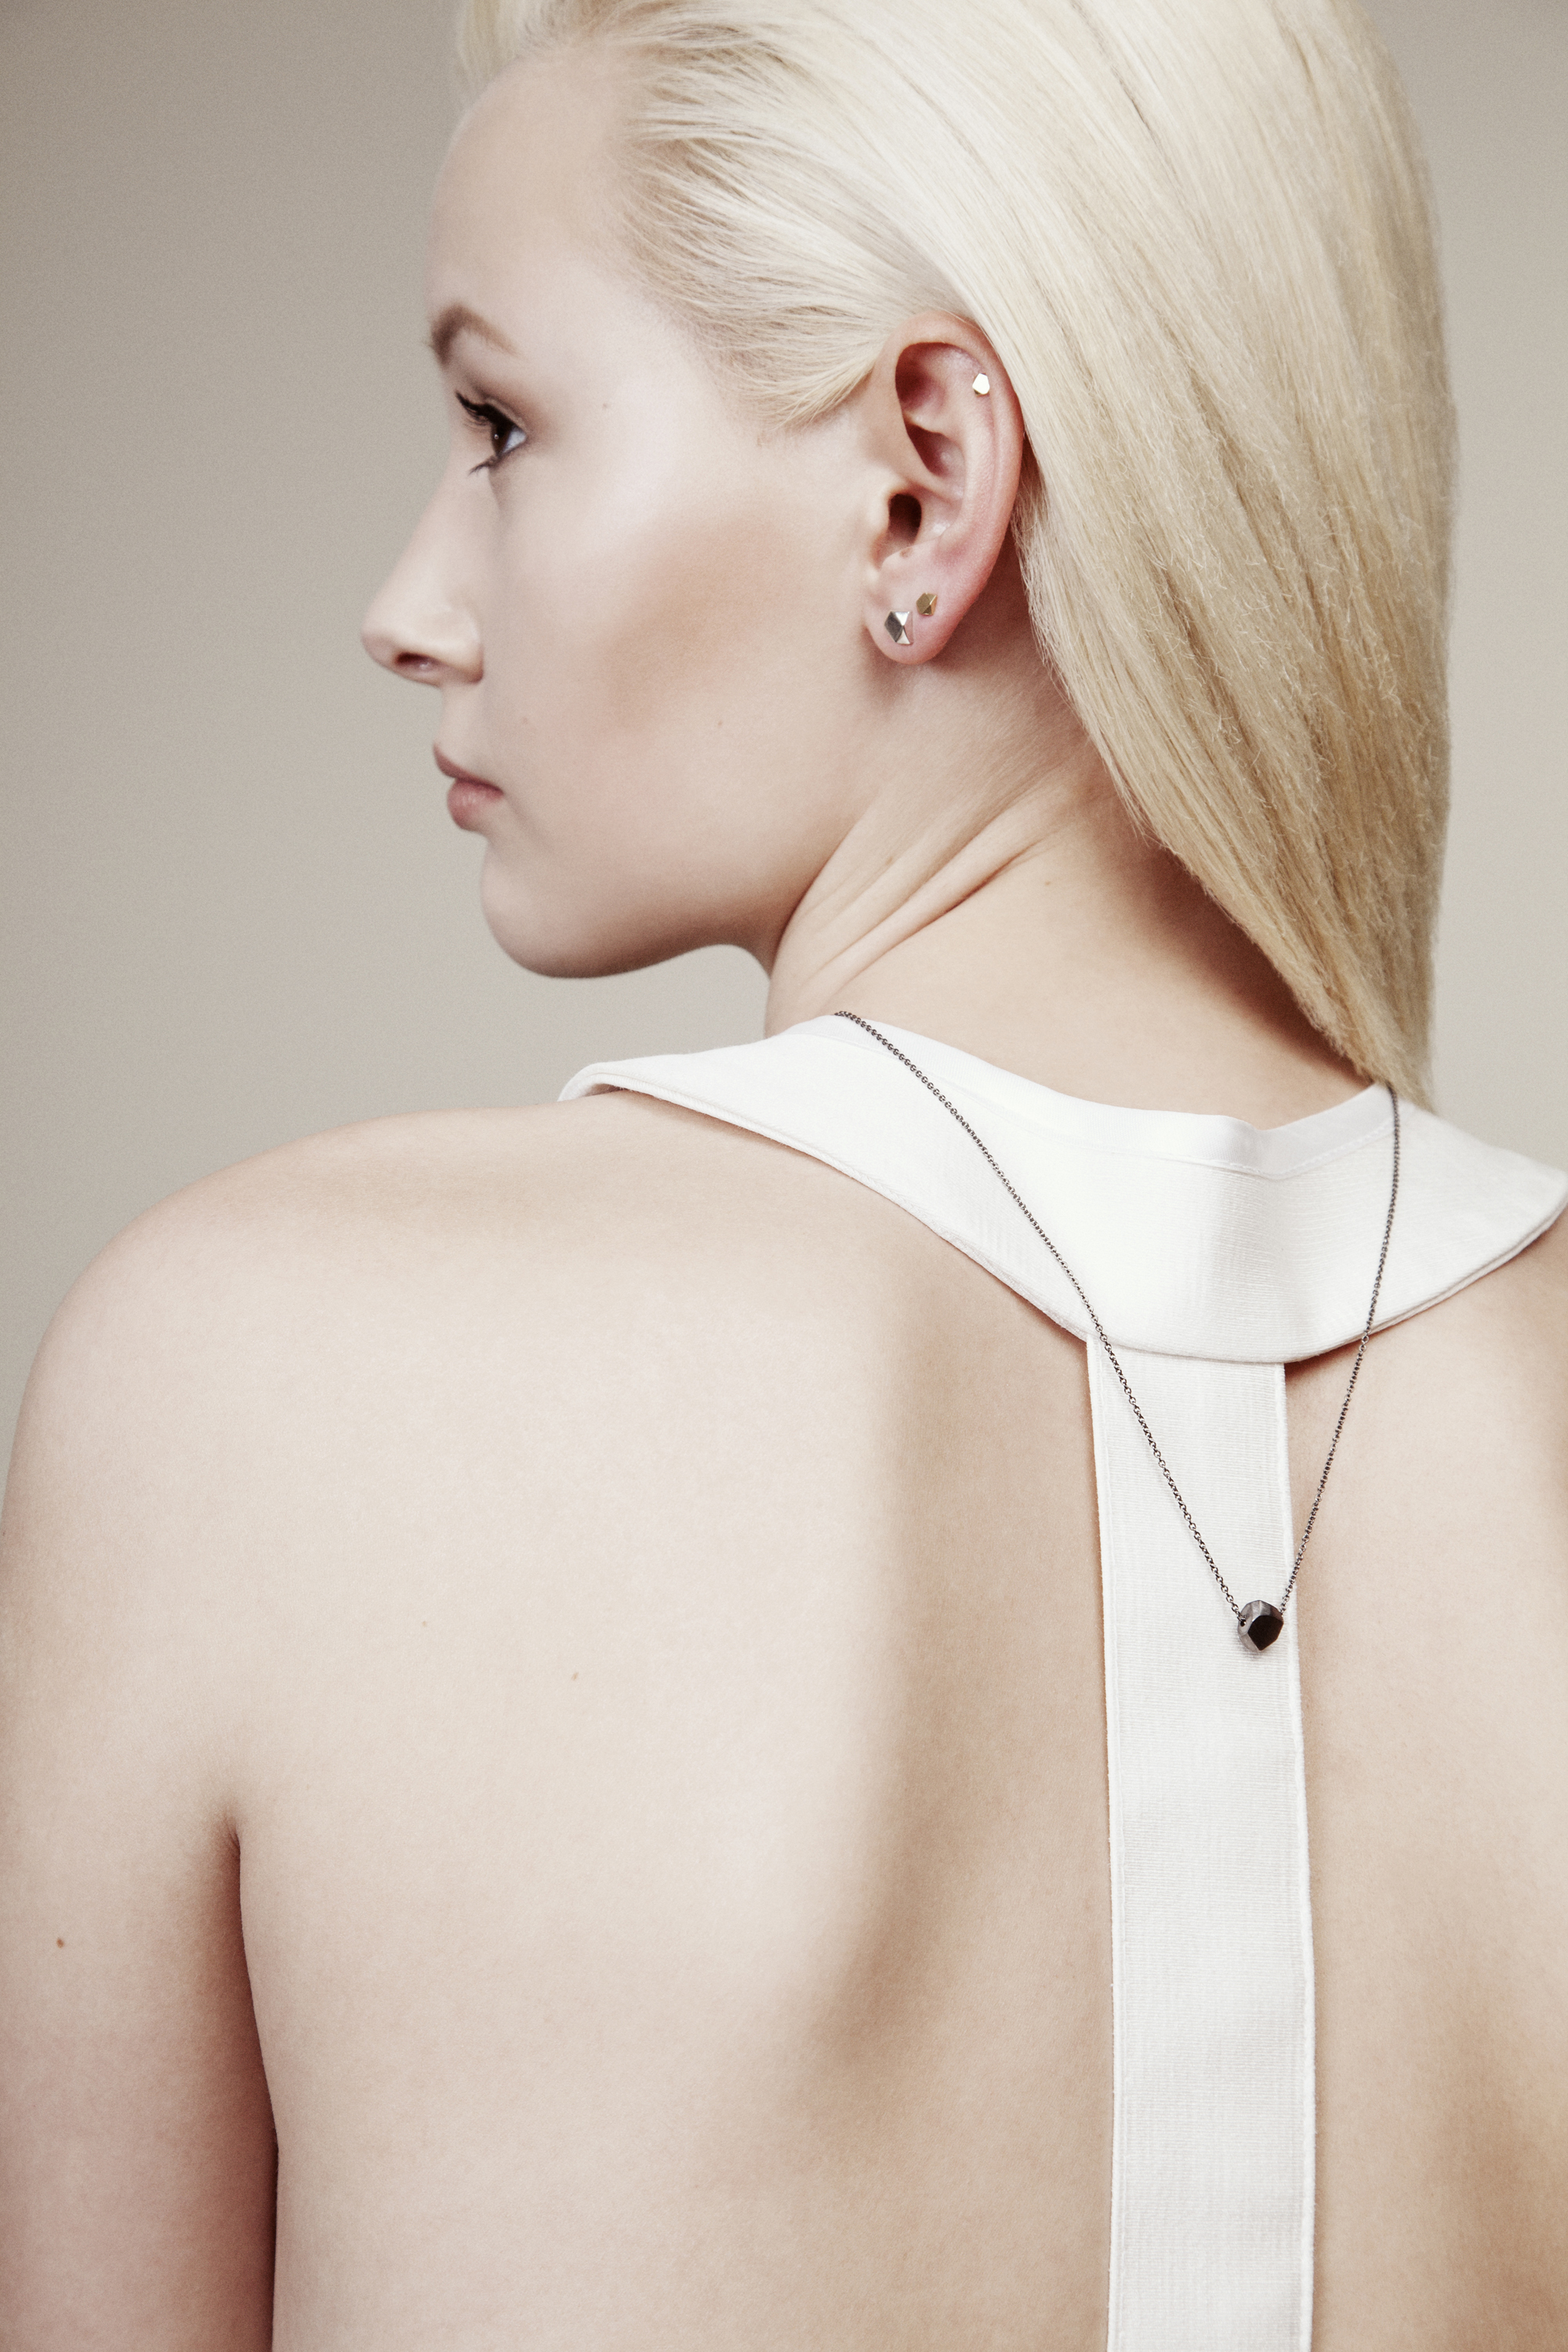 veronika dorosheva LOOKBOOK FOR IDAMARI AW COLLECTION